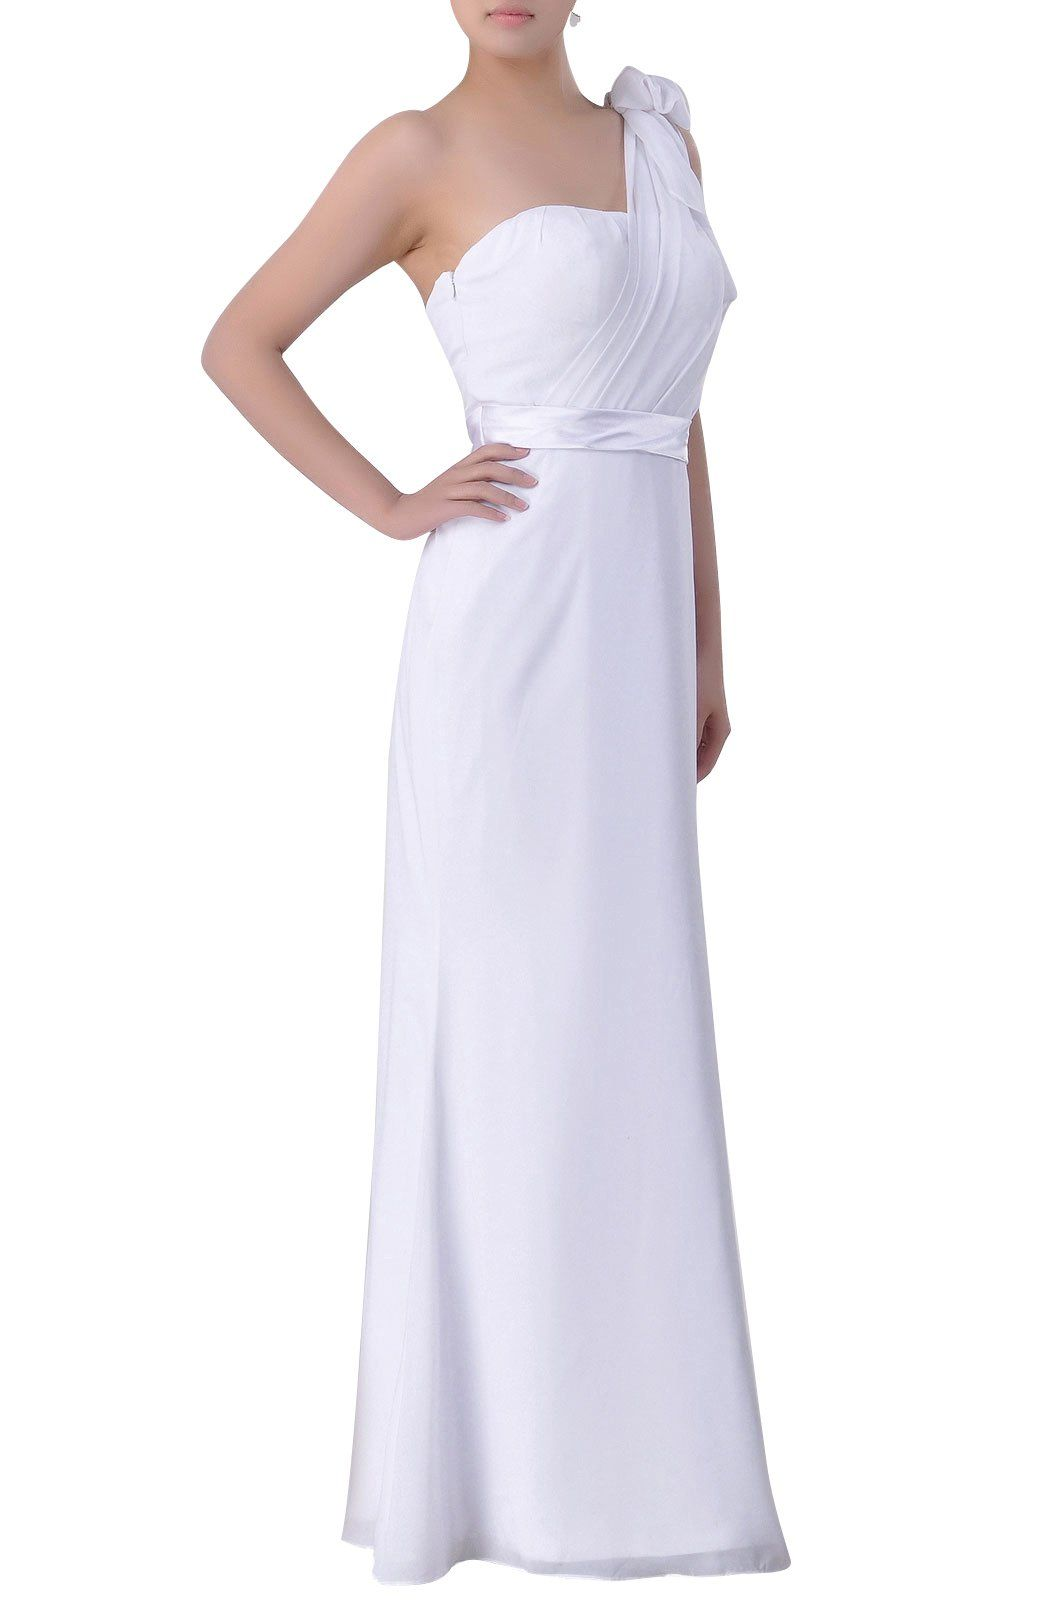 b8414a39ca79 Adorona One Shoulder Special Occasion Pleated Chiffon Formal Prom Long  Bridesmaid Dress Color CanaryCustomized ** You can get more details by  clicking on ...